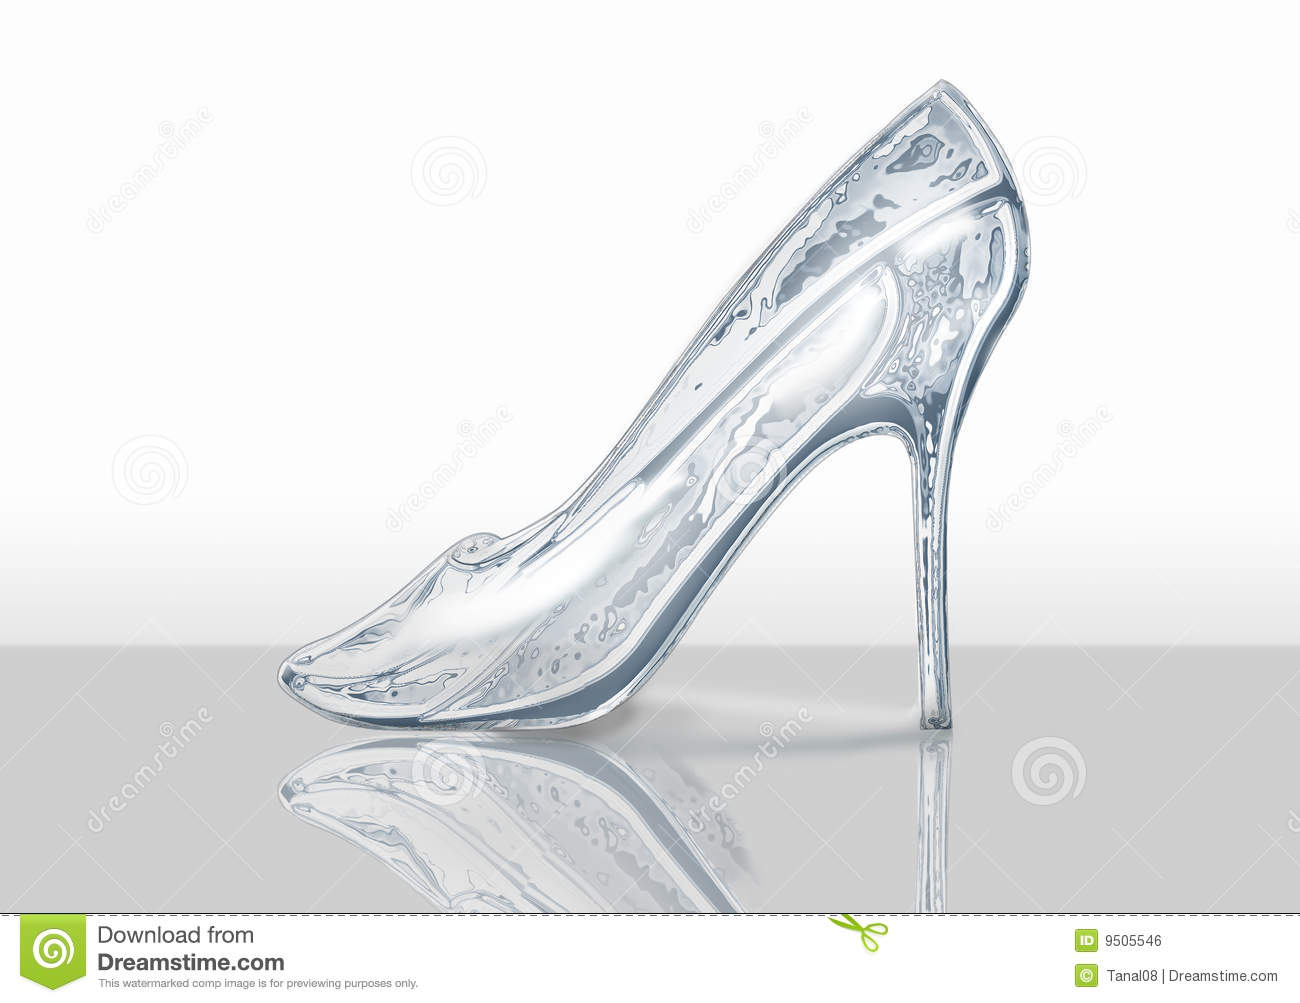 There is a crystal shoe with reflexion for the Cinderella.